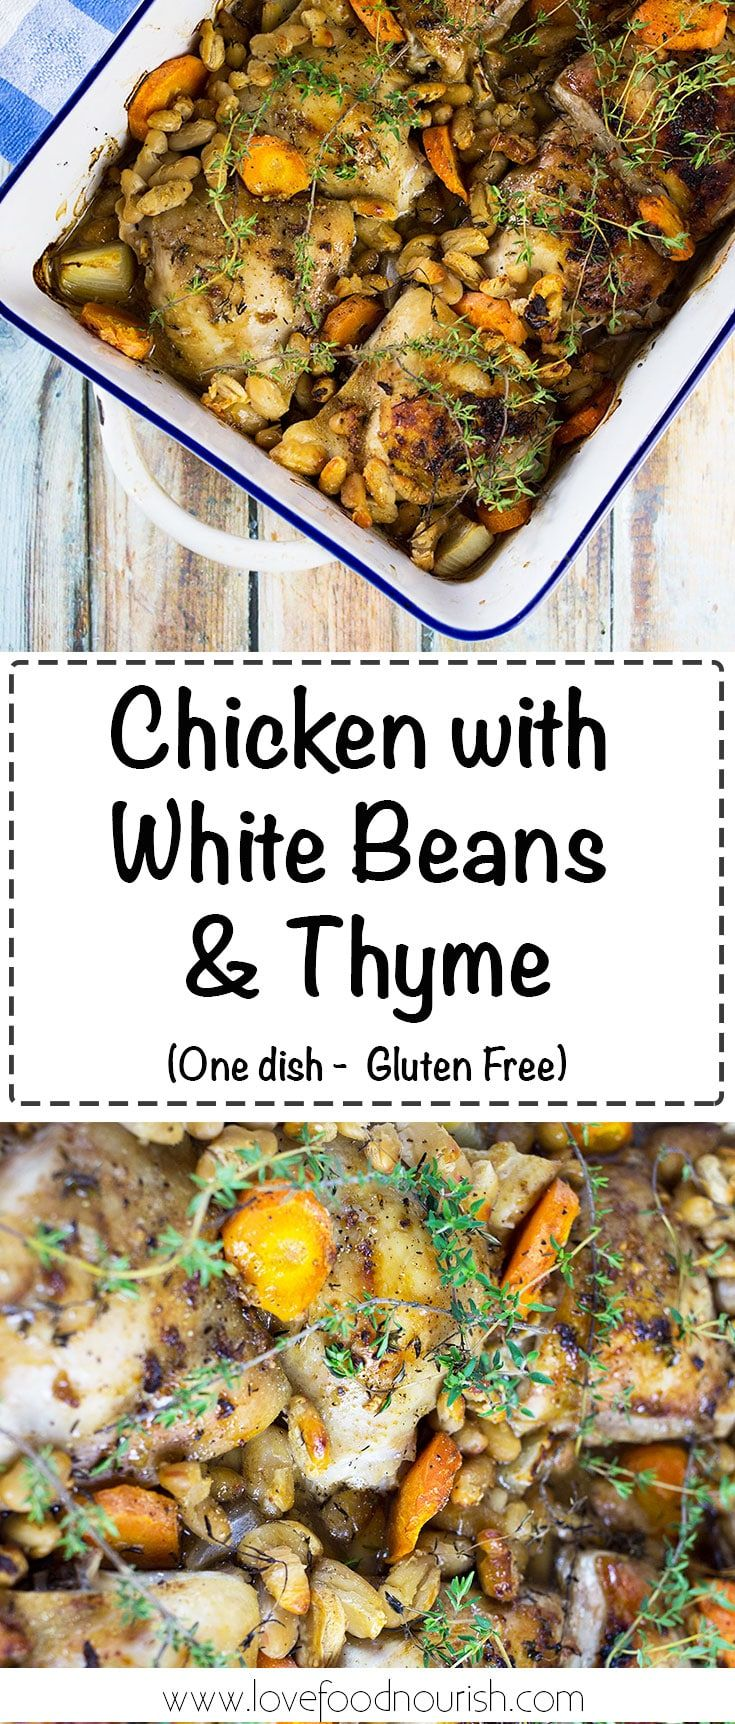 Chicken with White Beans and Thyme - A simple rustic one dish chicken meal that is full of flavour. #glutenfree #glutenfreedinner #onepan #dairyfree #chicken #chickendinner #onedishmeal #cleaneatingdinner